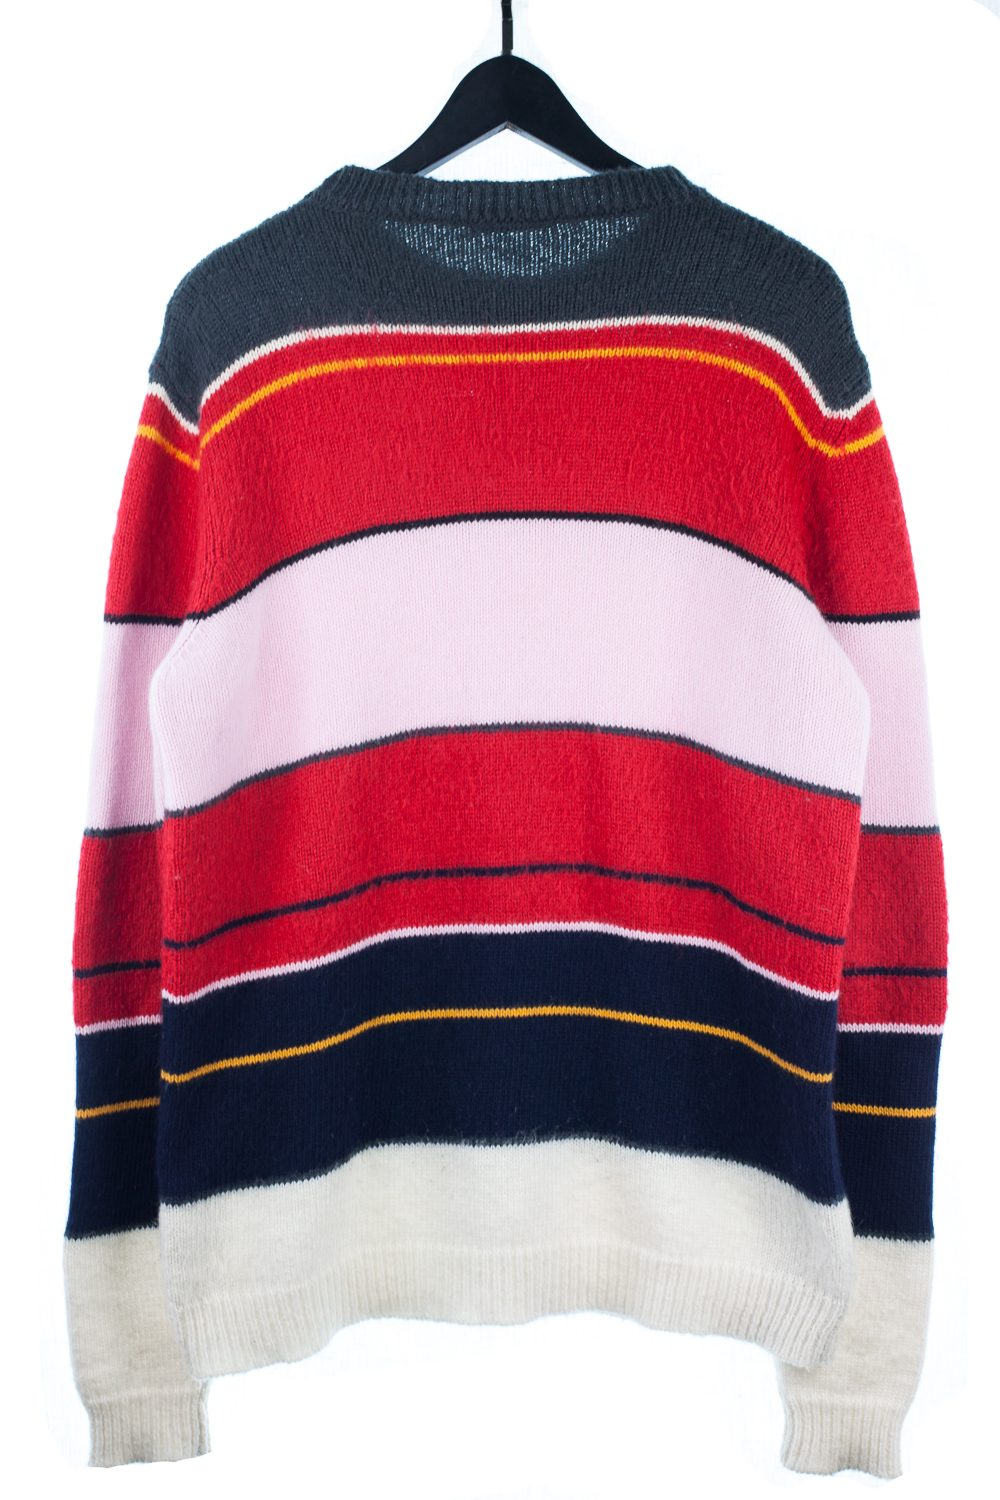 FW13 Border KnitCrewneck Sweater